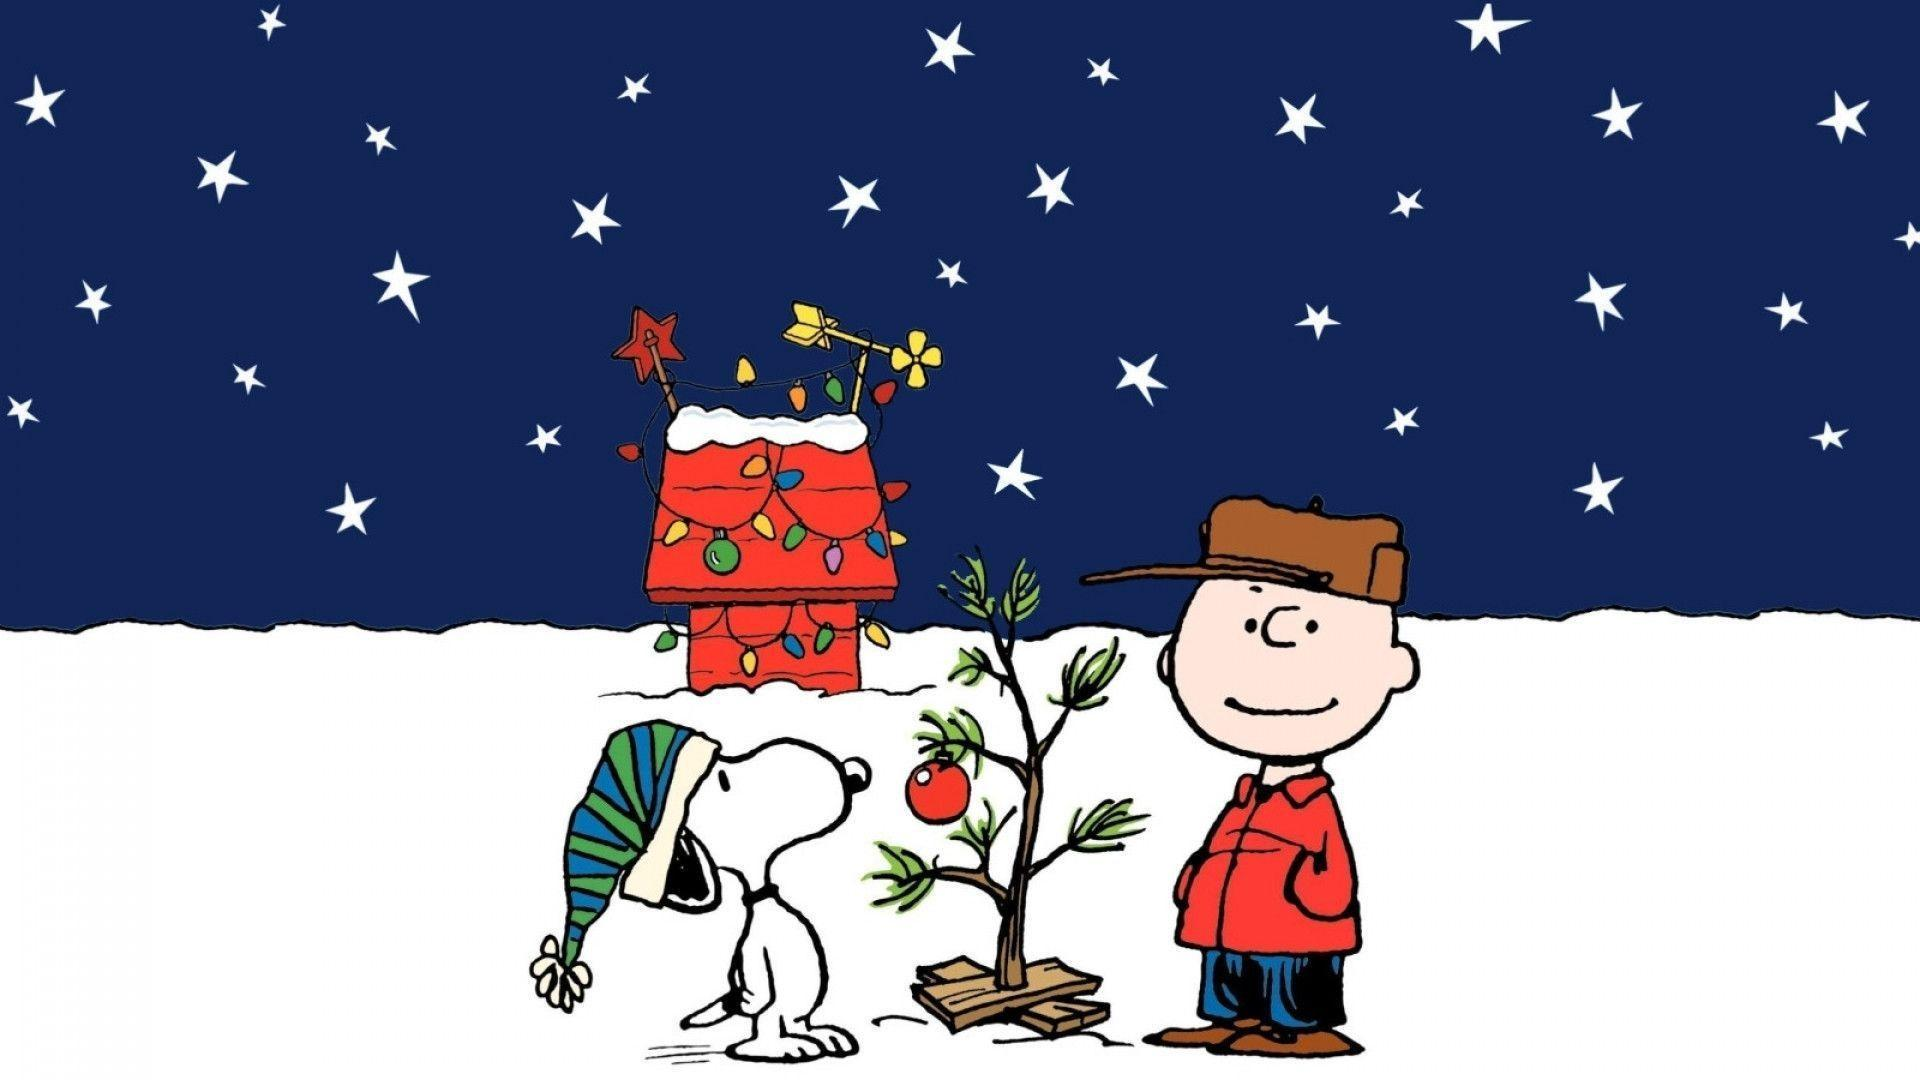 Snoopy Winter Wallpapers Top Free Snoopy Winter Backgrounds Wallpaperaccess